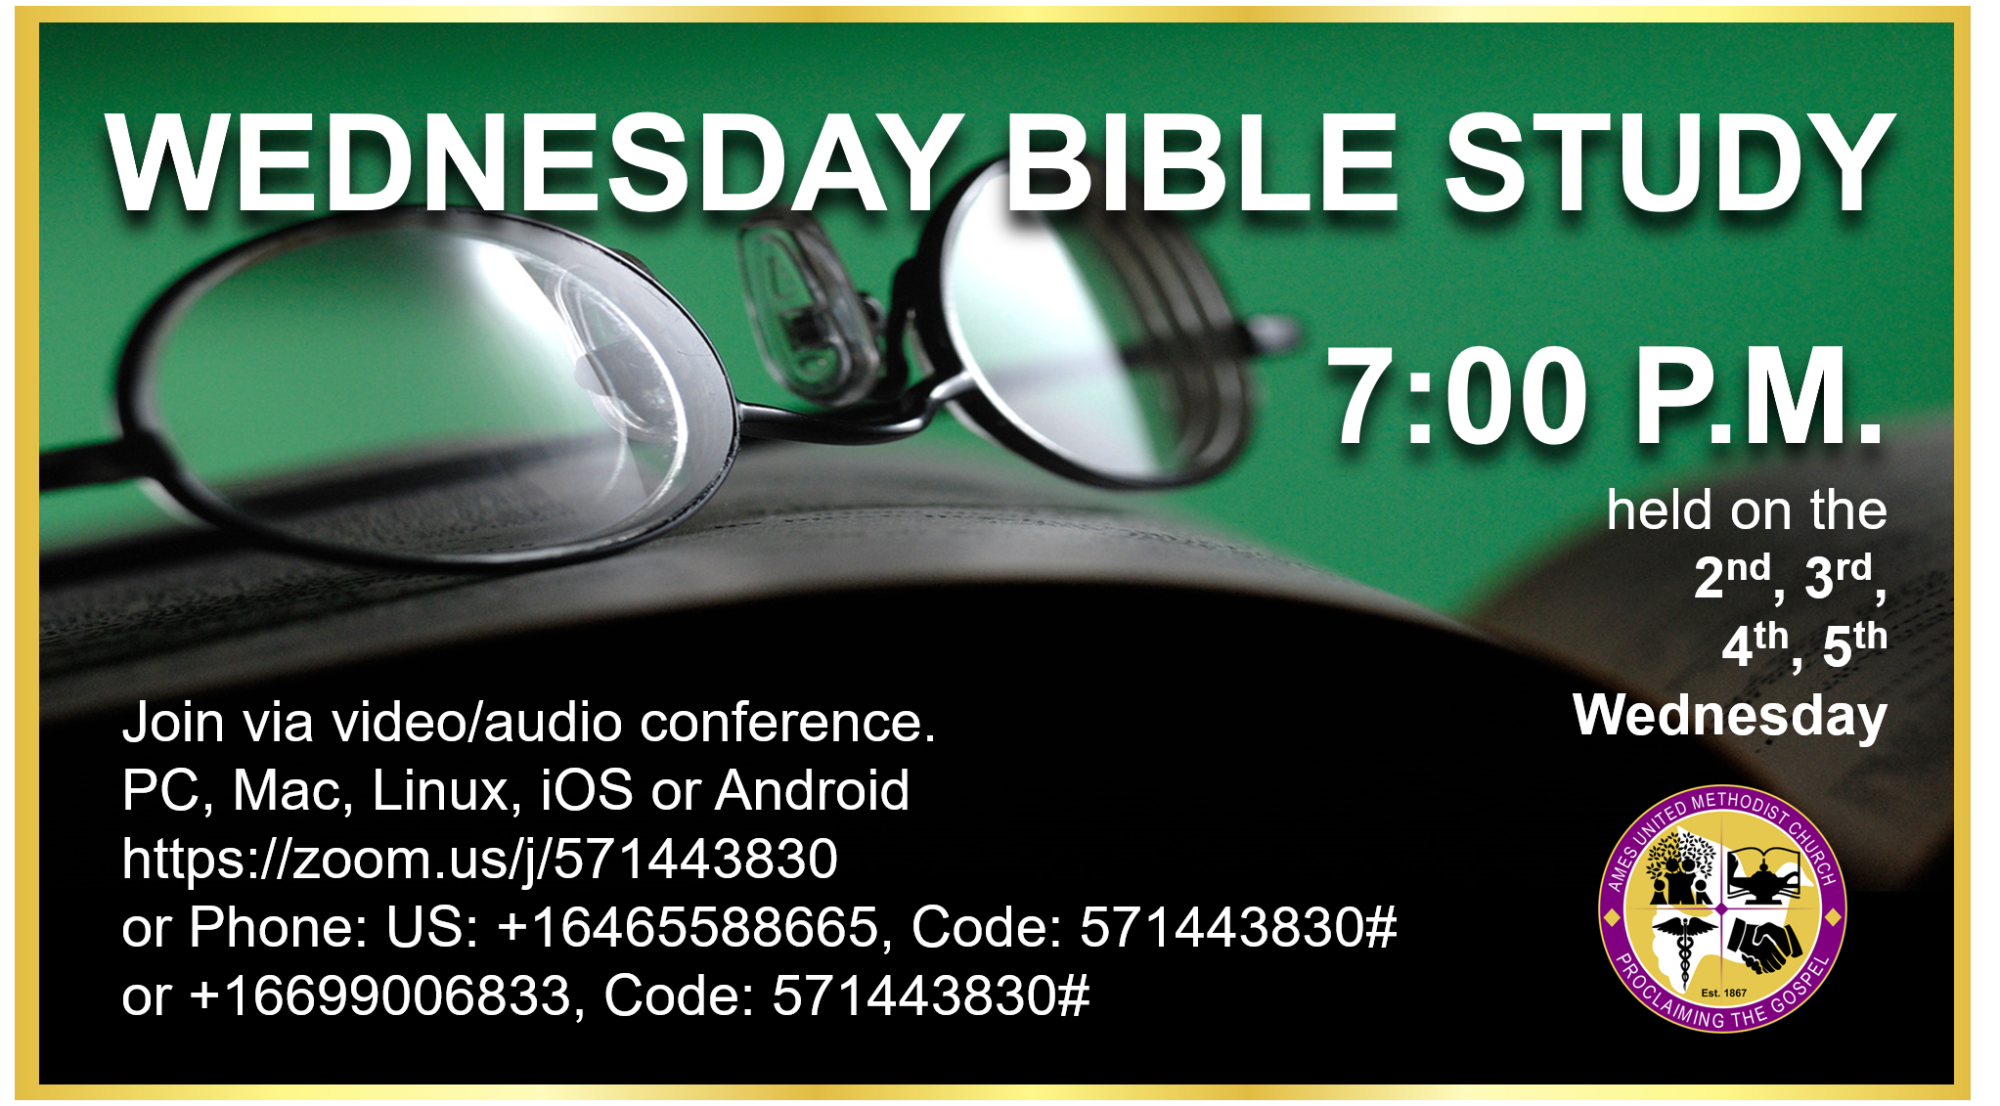 3-23-2020_Bible_Study_-_Wednesday.png